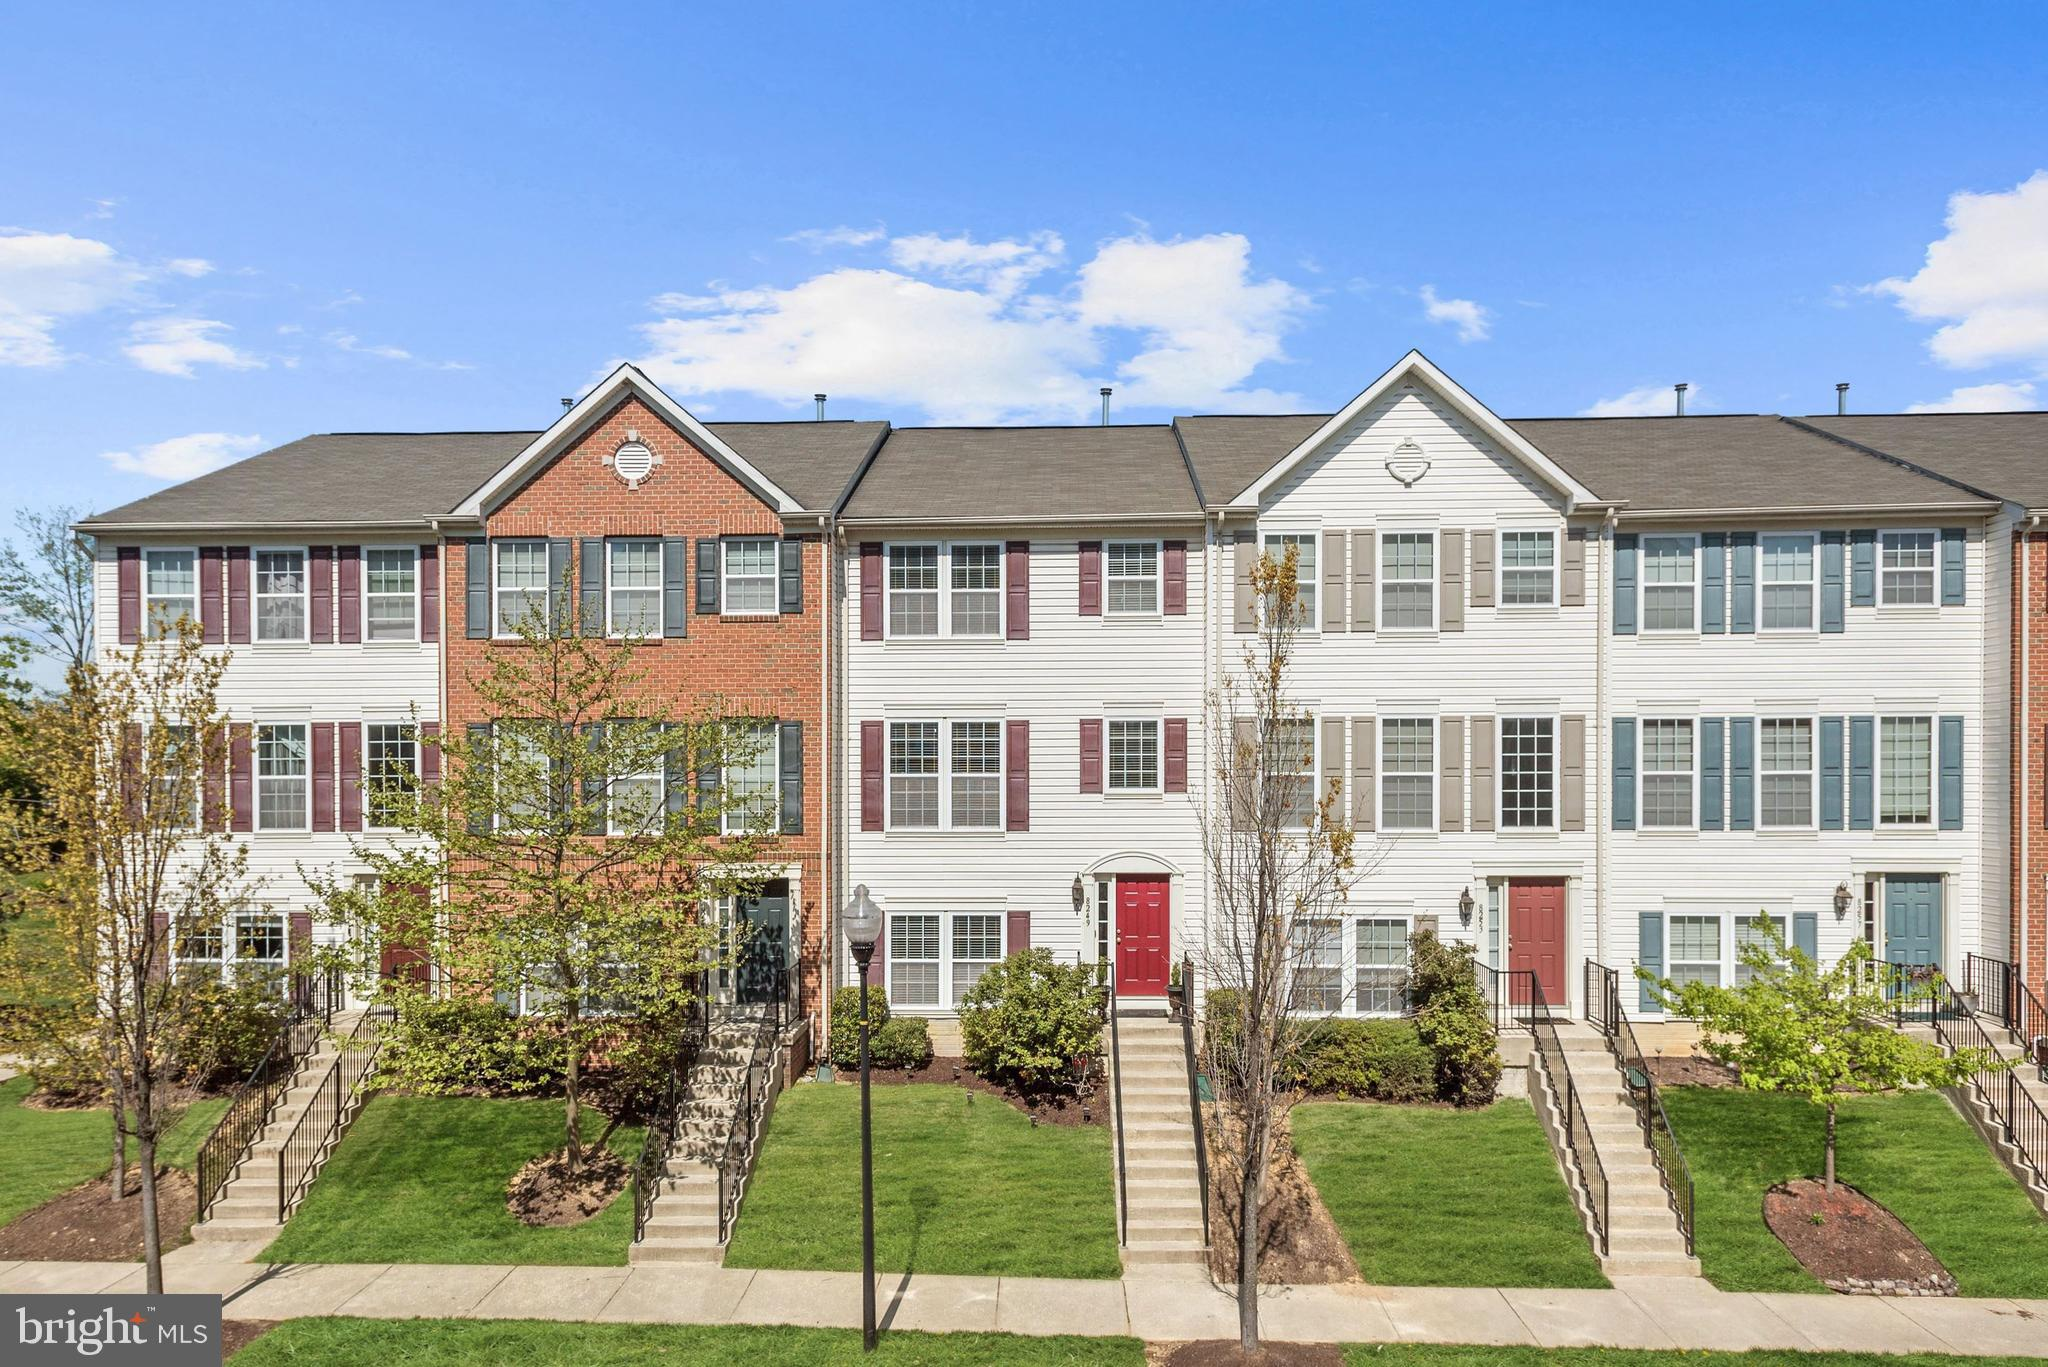 Stunning colonial townhome in the Summerfield at Mission Place community boasting gleaming floors, l